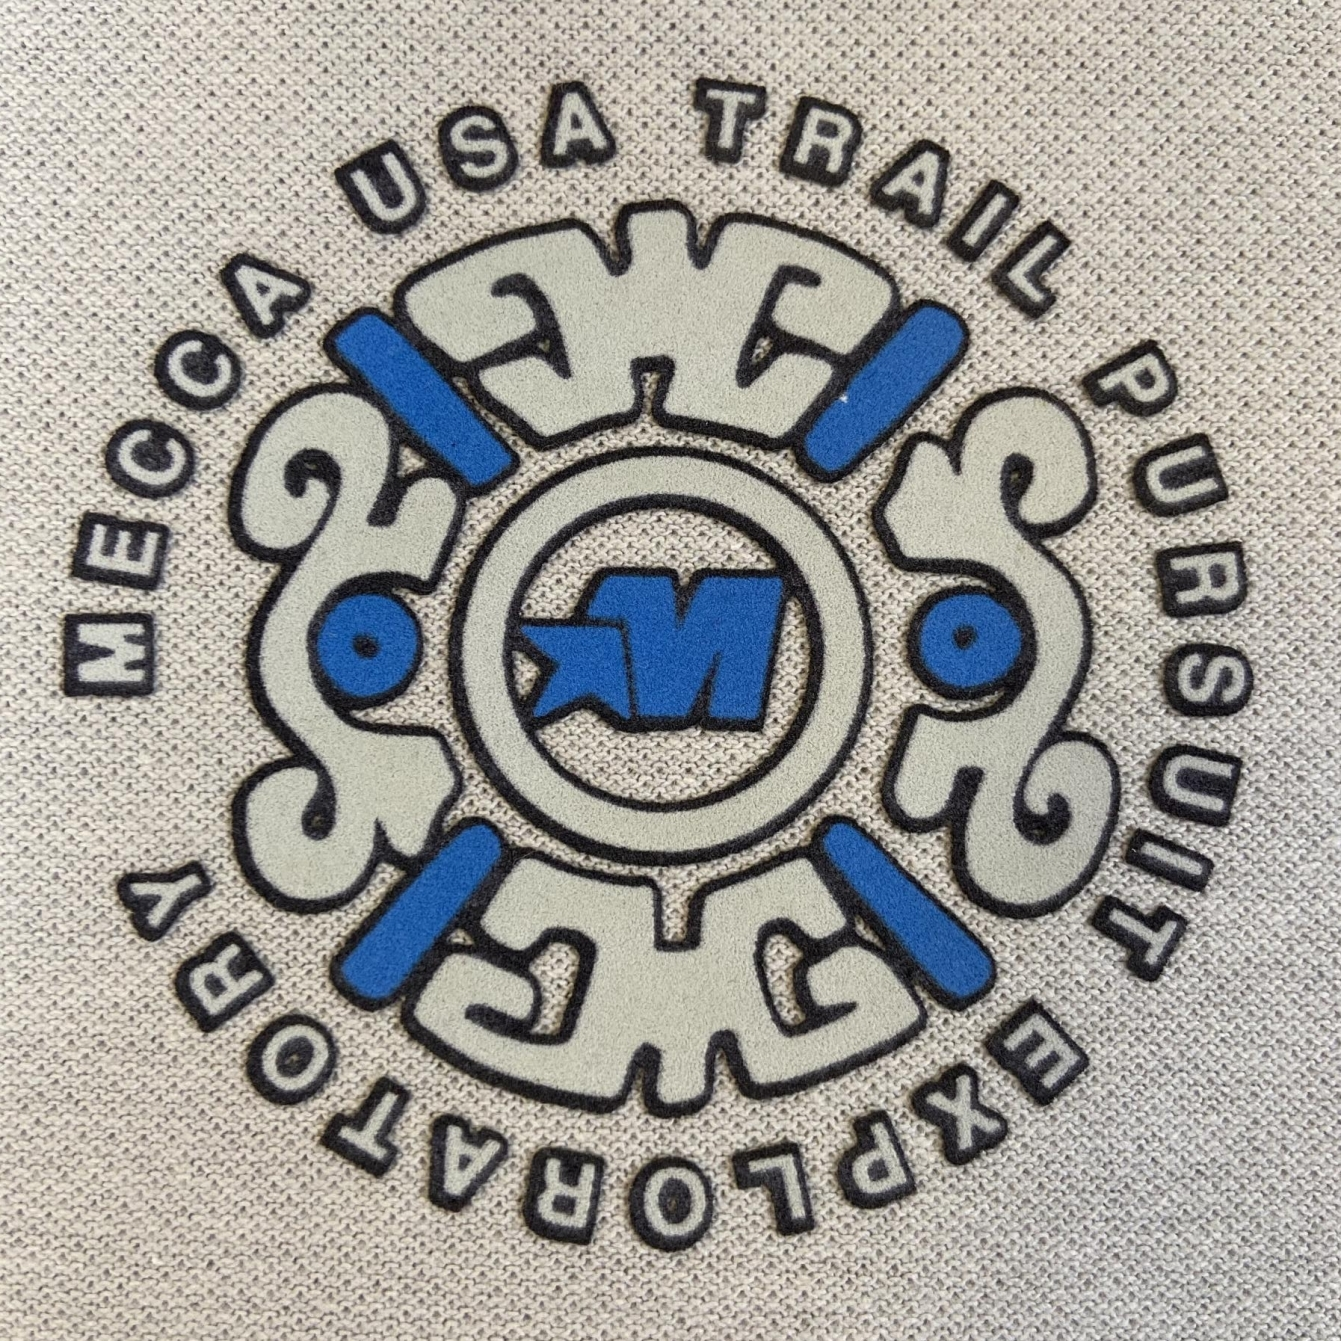 Mecca USA Patch